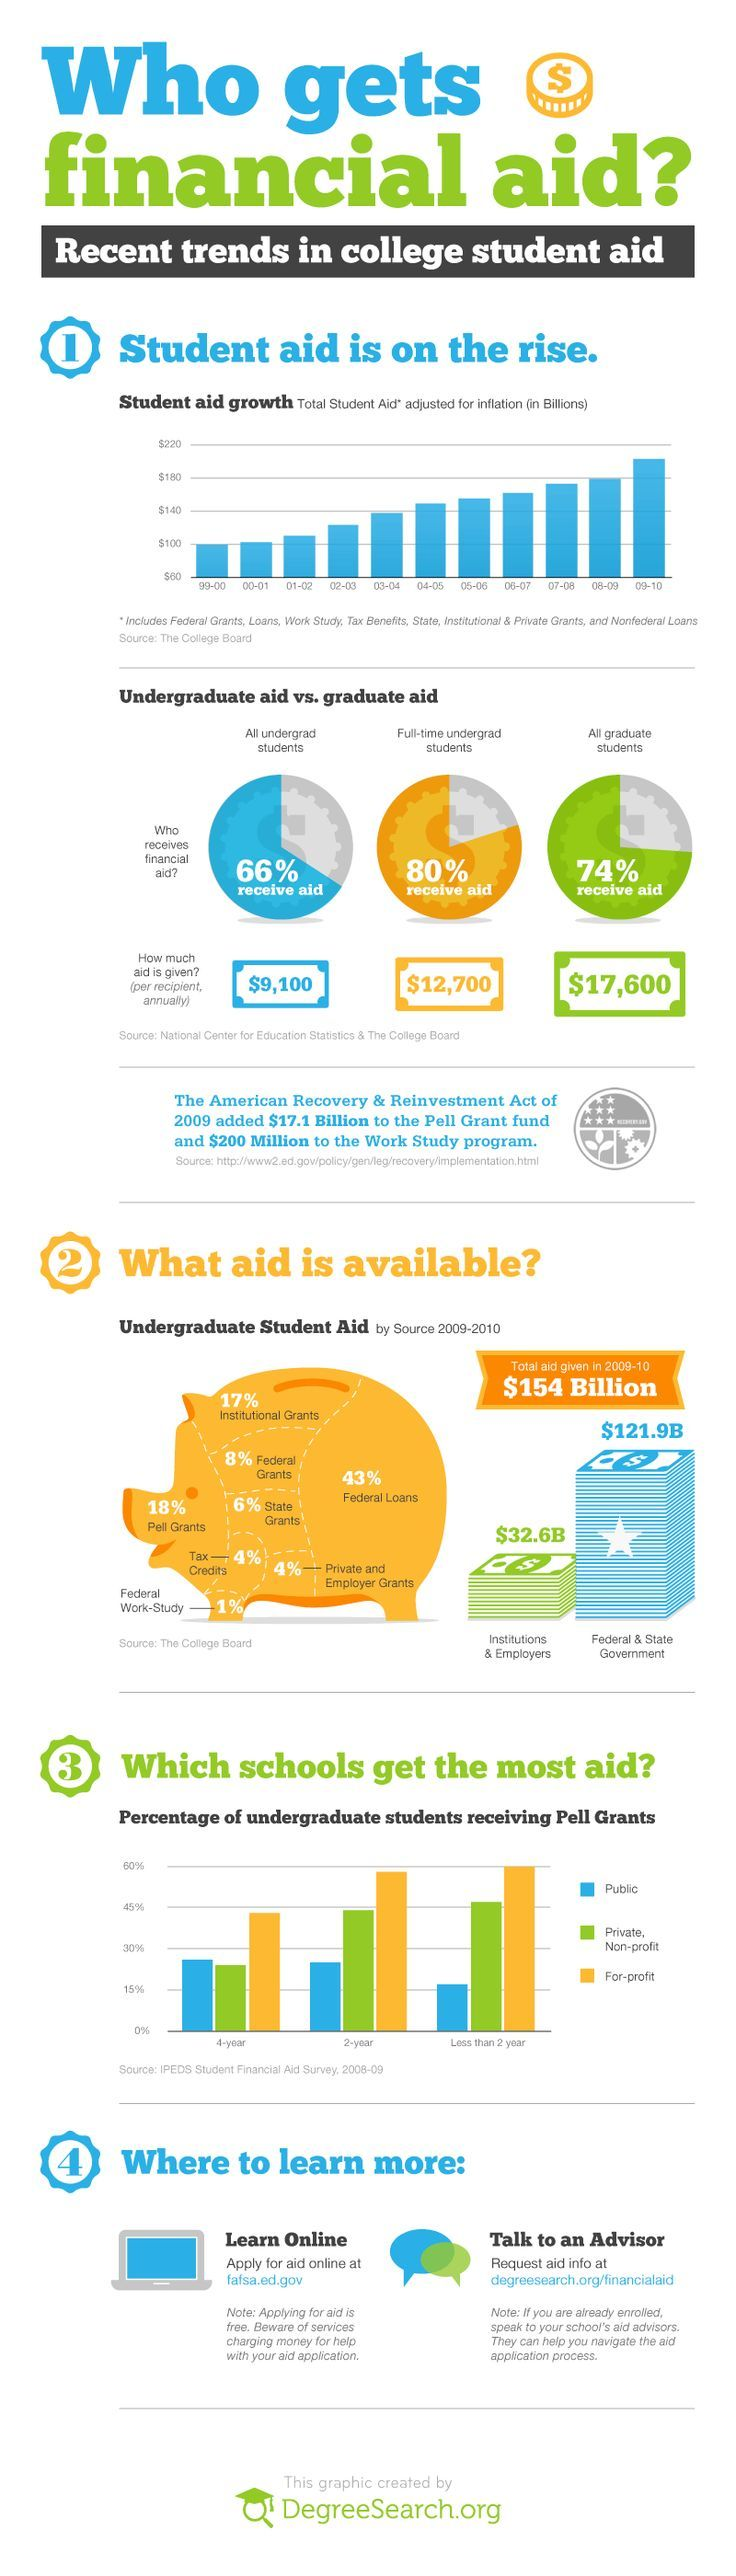 17 Best images about Financial Aid / Scholarships for College Students on Pinterest | Find ...